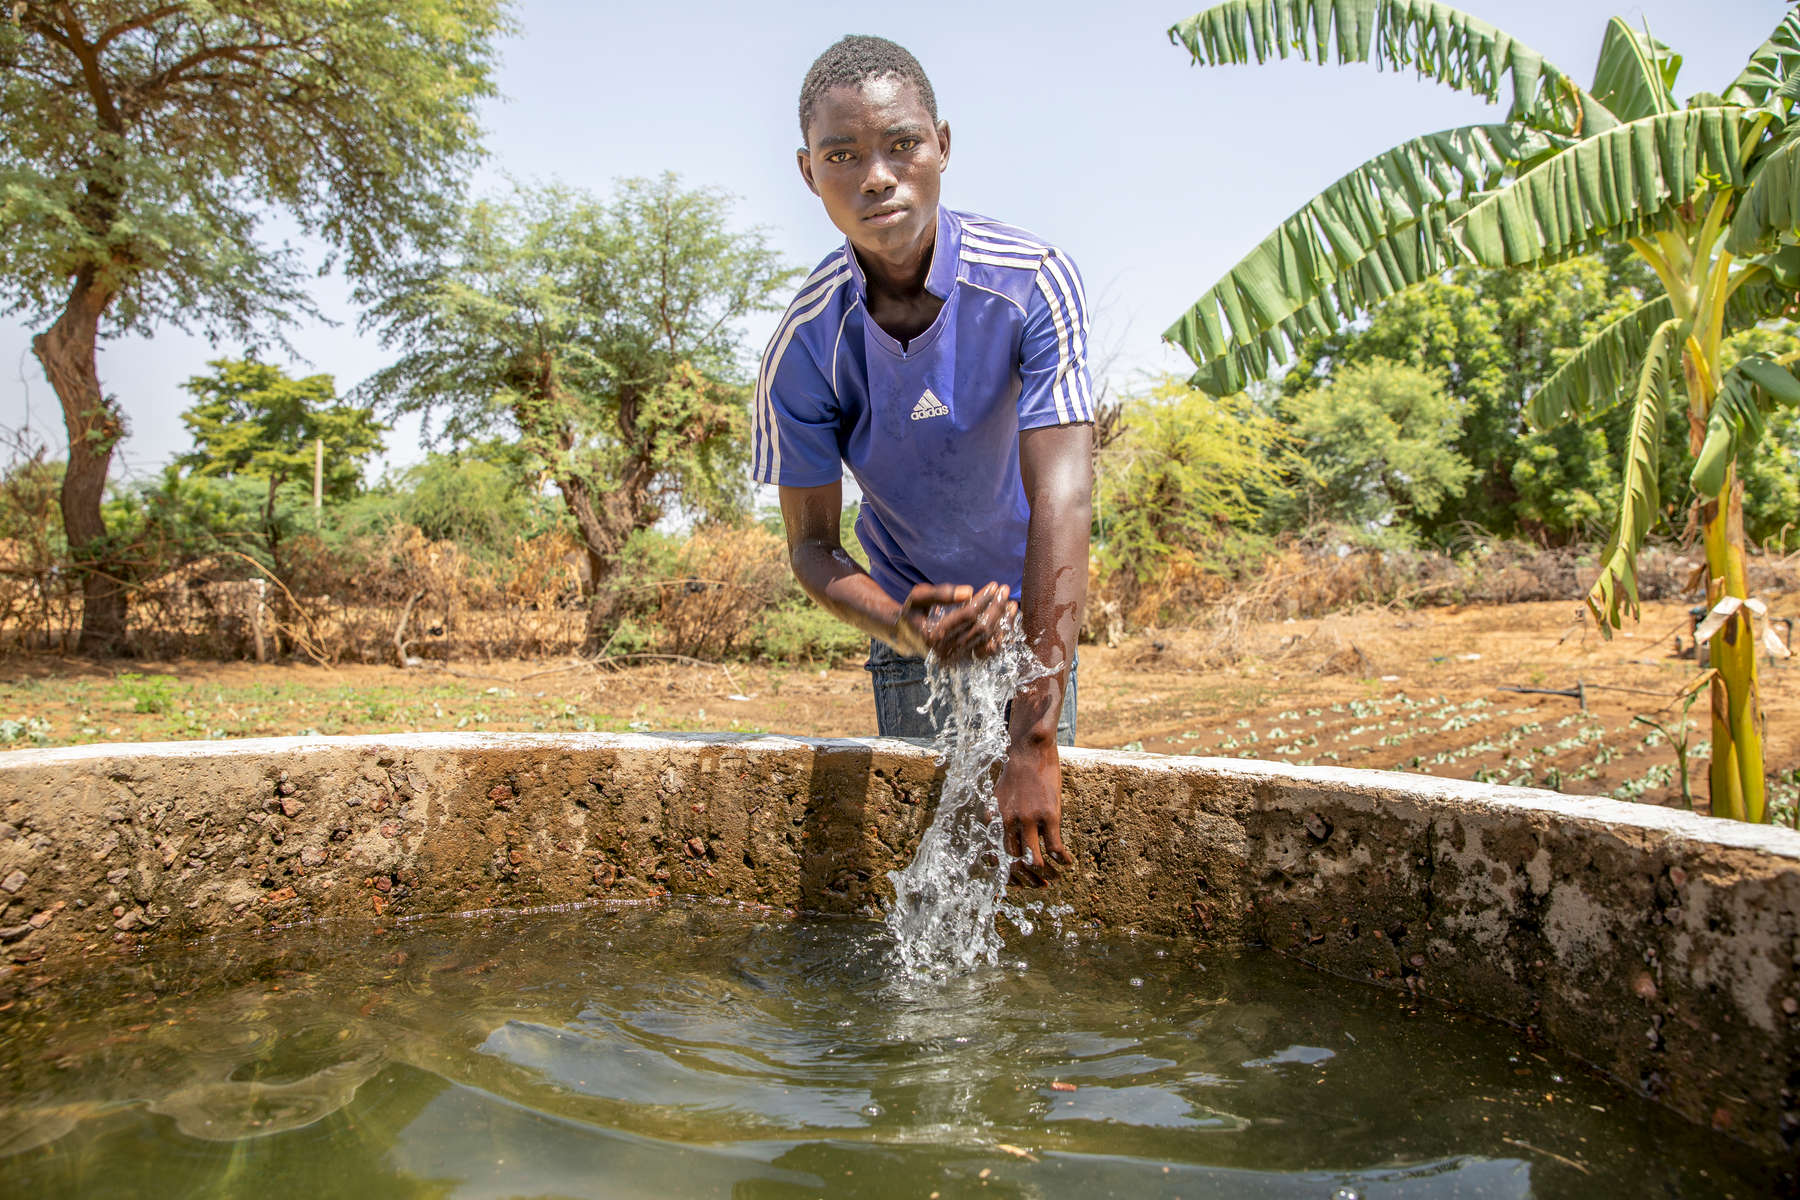 "Abdoulfataou Ganda, 18, stands next to a well on his farm. ""Most of our friends migrate to seek a better life,"" Abdoulfataou explains. He has taken over his father's farm, which earns him enough to be self-reliant and support his family. Like many youth in his community, he is at risk of migrating in search of opportunity, which means their communities are losing talent and skill to other places. But Abdoulfataou participated in Mercy Corps' financial literacy training, where he learned about budgeting, saving and how to seek microfinance support for business, which helped solidify is believe that a good life is possible at home. ""To me, it's always better to be at your home, that's where you can naturally be fine,"" he says. ""Home is home. And I believe that you can make a business and a good living even here, as long as you have something to do."" Driven by poverty, a lack of opportunity, and cultural expectation, many people in Niger migrate to different areas or countries for months or years at a time to earn income and experience life outside their home community. Migration routes have become increasingly dangerous and costly, putting migrants who don't know their rights at risk of violence or exploitation. However, migration also has the benefit of enabling people to gain skills they would otherwise not, which they can utilize in their home communities if they return and have access to opportunities. Mercy Corps' AMIPA program works with returning migrants and those at risk of migrating to provide education about the risks, so people can make informed decisions, while also providing financial inclusion and business support for those who have returned or choose to stay, so that they may access livelihoods in their home communities."